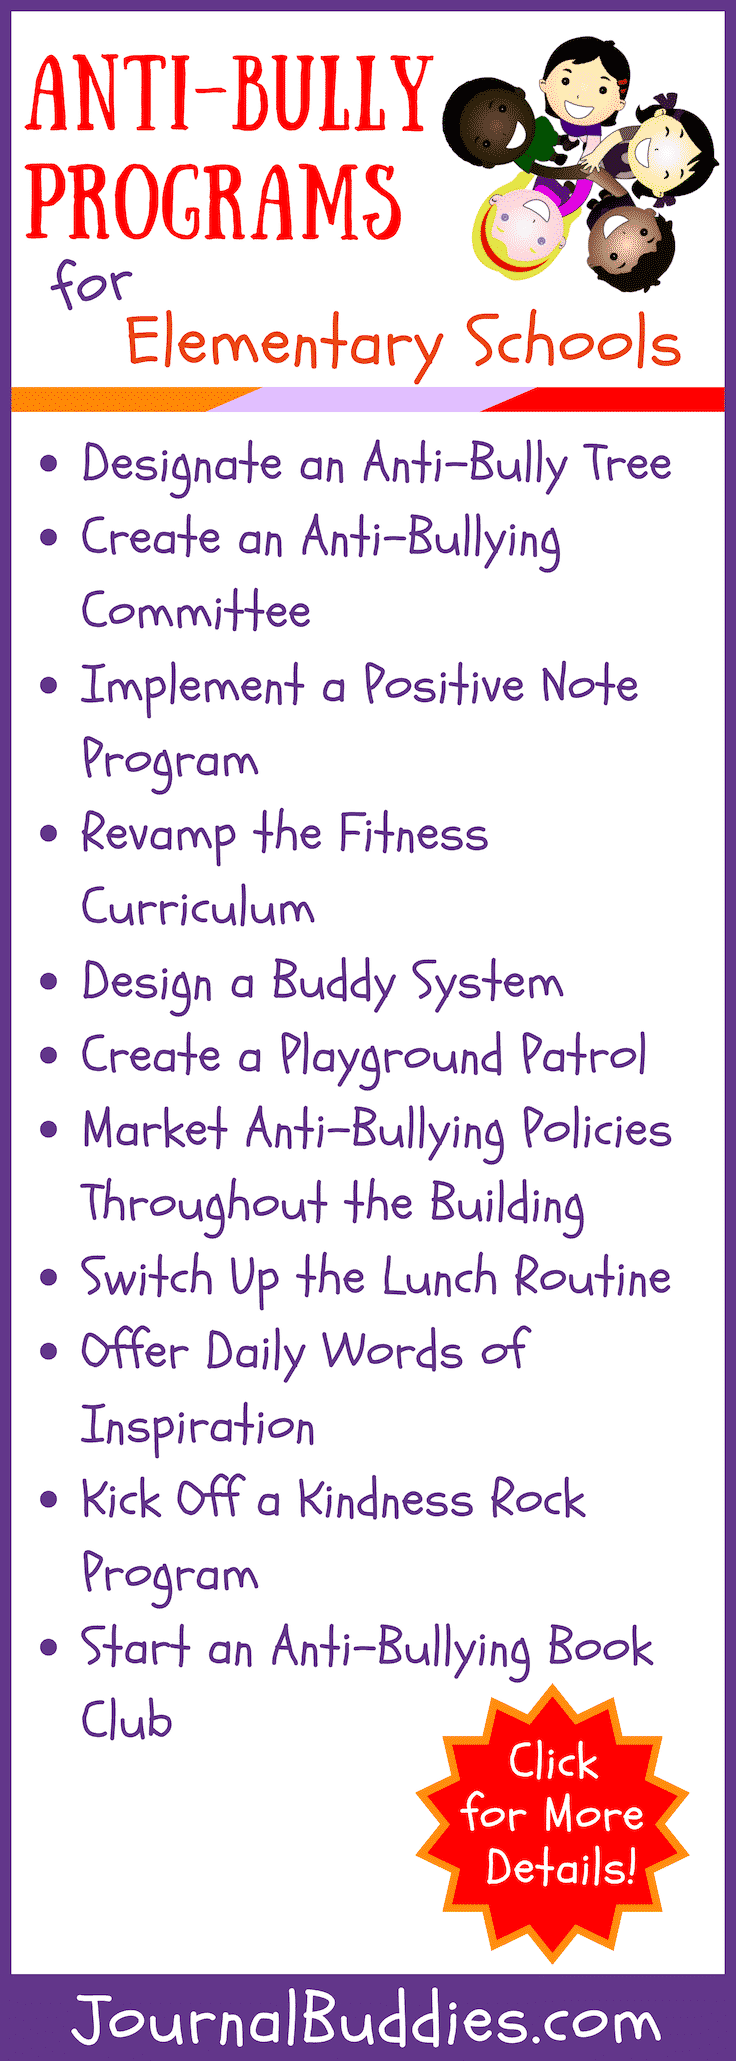 These anti-bullying activities for middle school kids will help to get the school year started on a positive and friendly note. Have fun with them and here's to wishing you and your students a wonderful, fabulous, and positive school year to come!